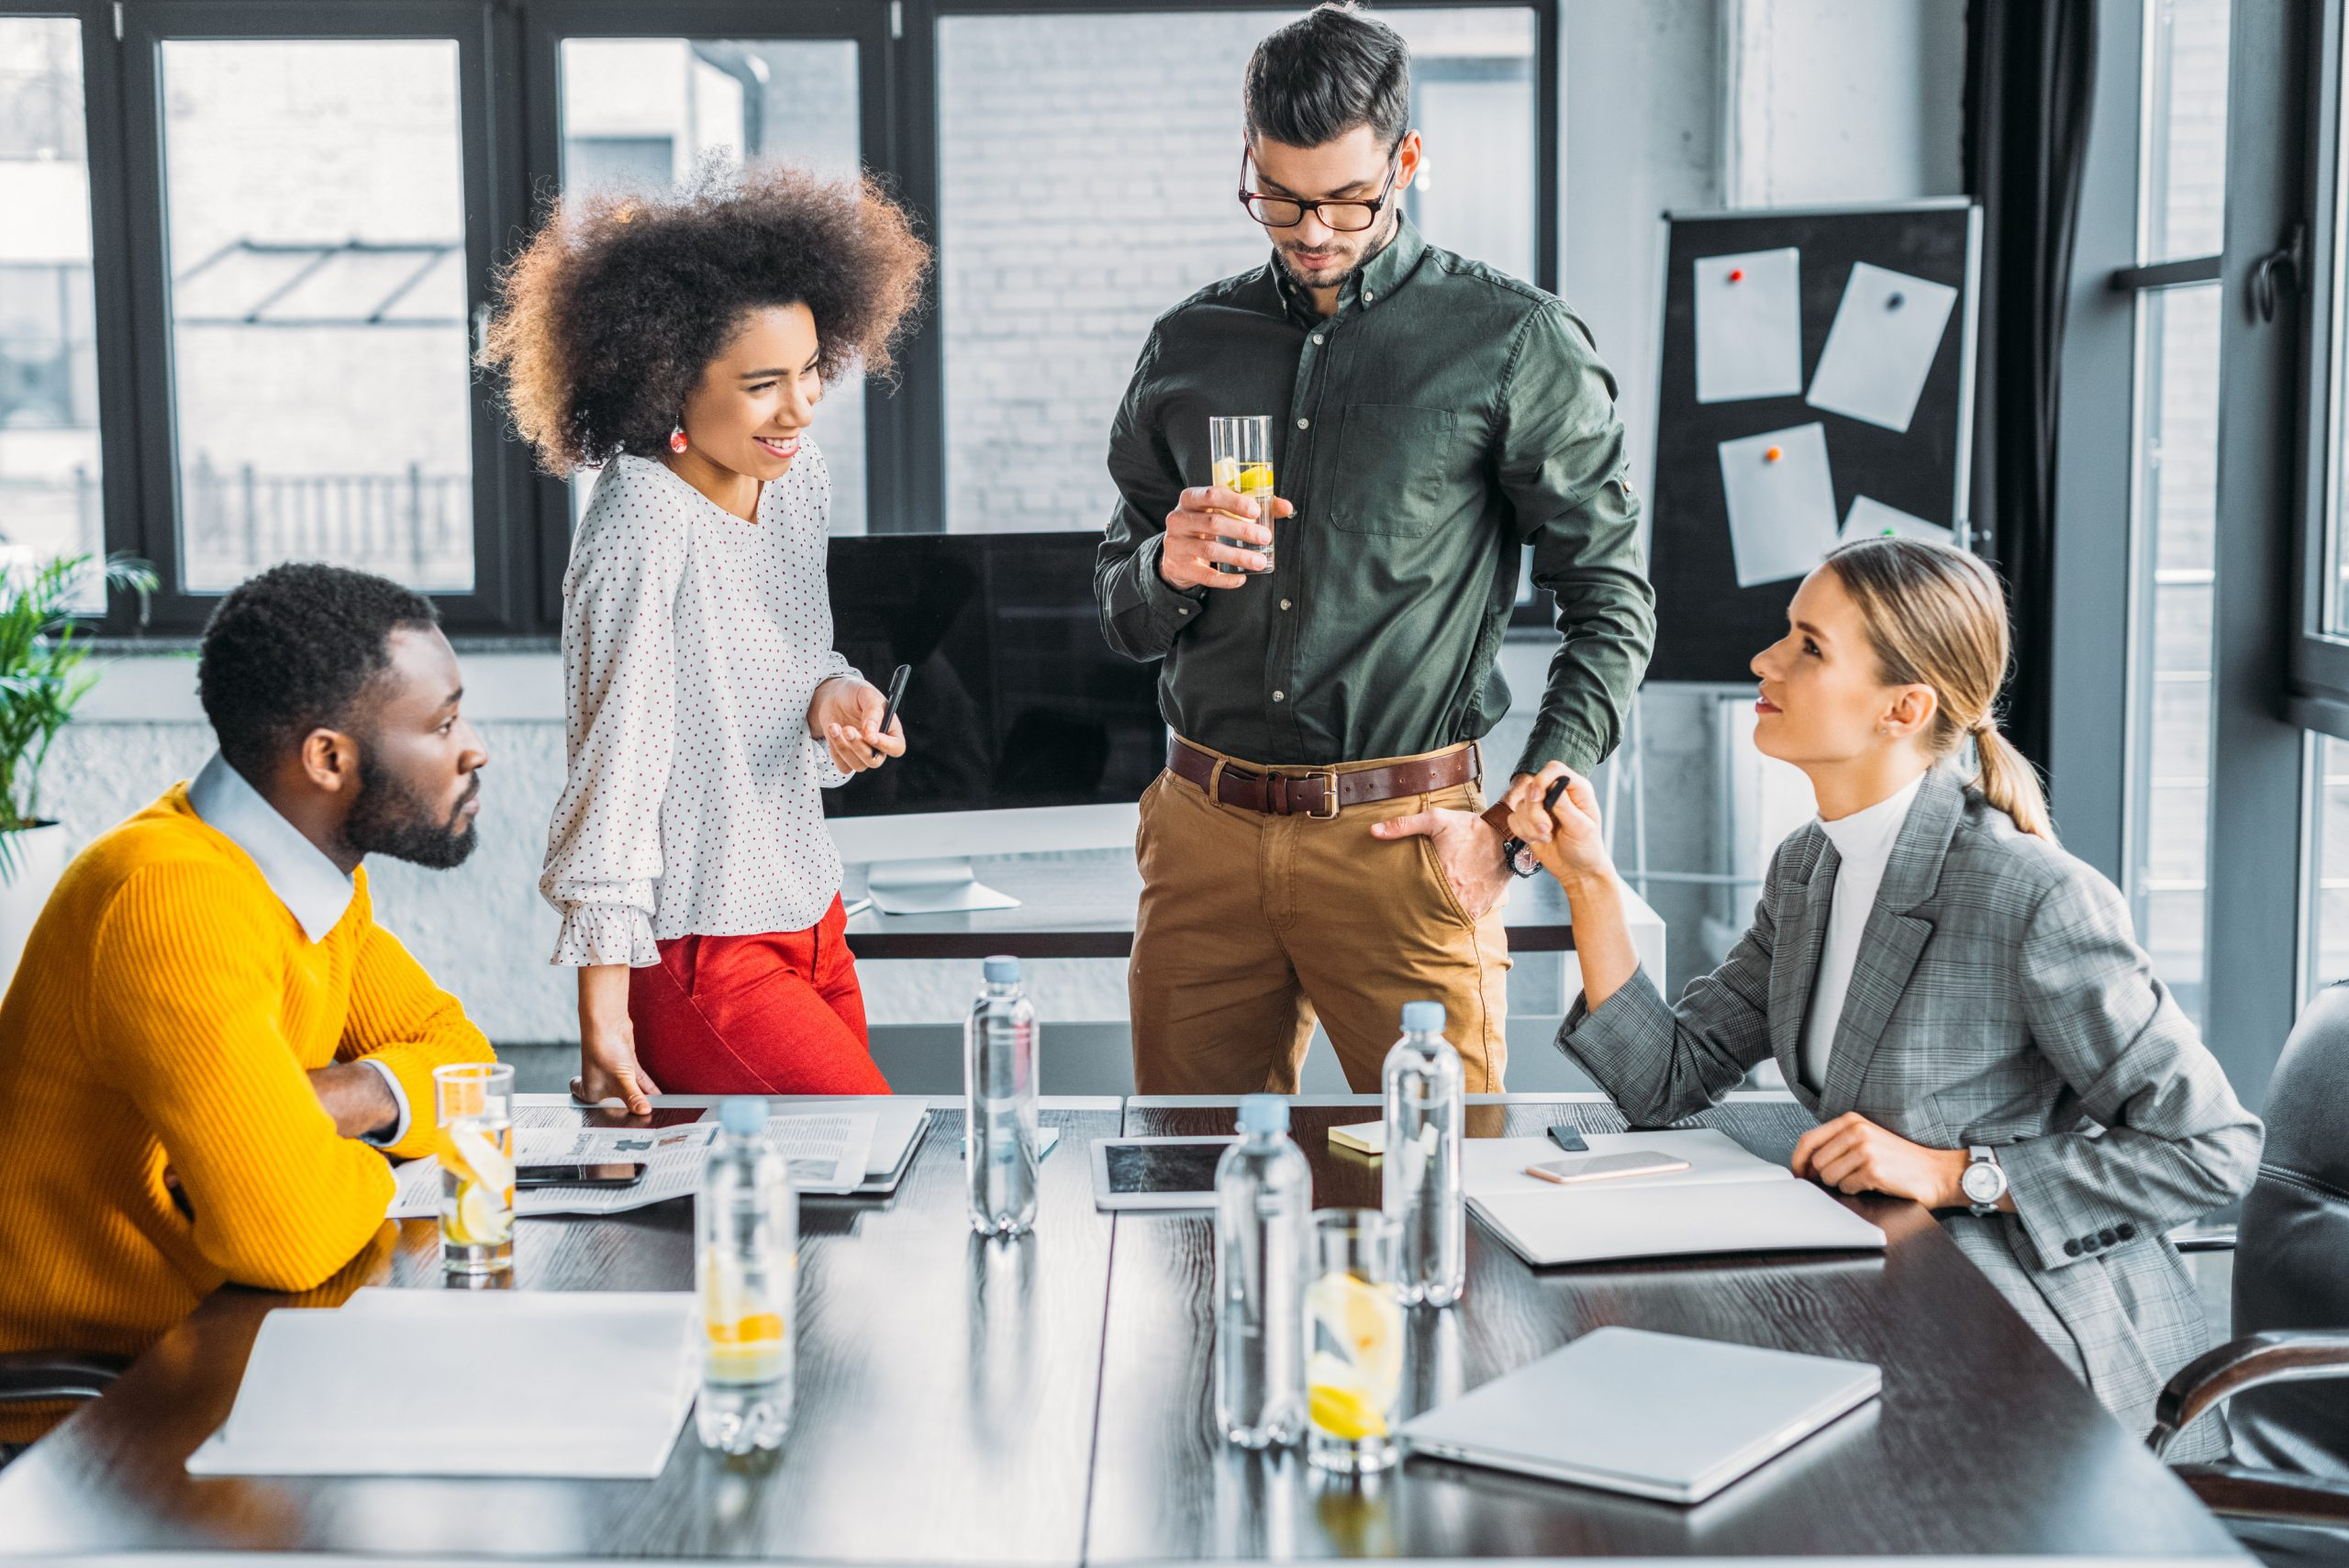 Connecticut Hydrated Employees | Health and Wellness | Positive Lifestyle Choices | Promote Productivity